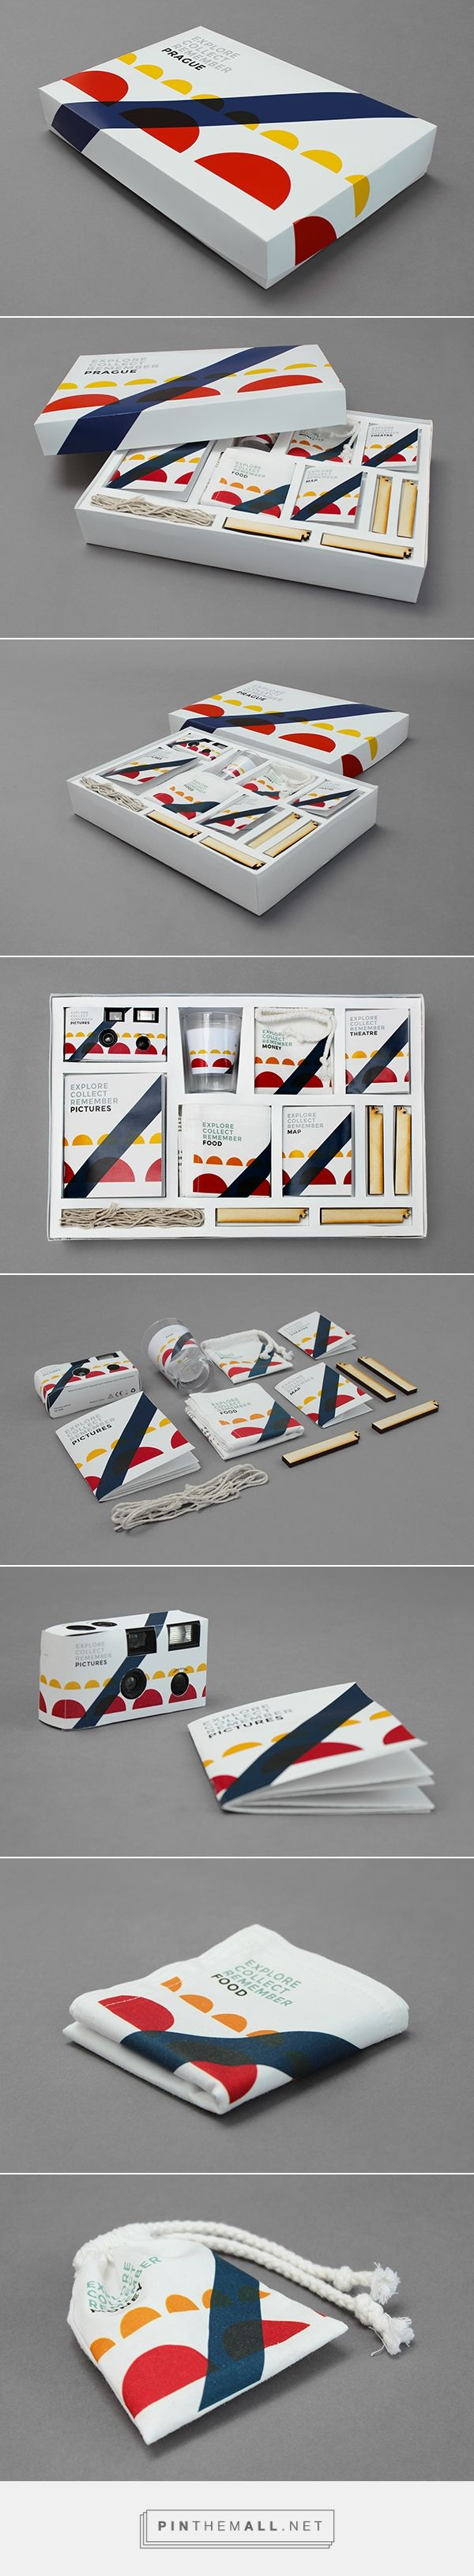 Explore Collect Remember Prague